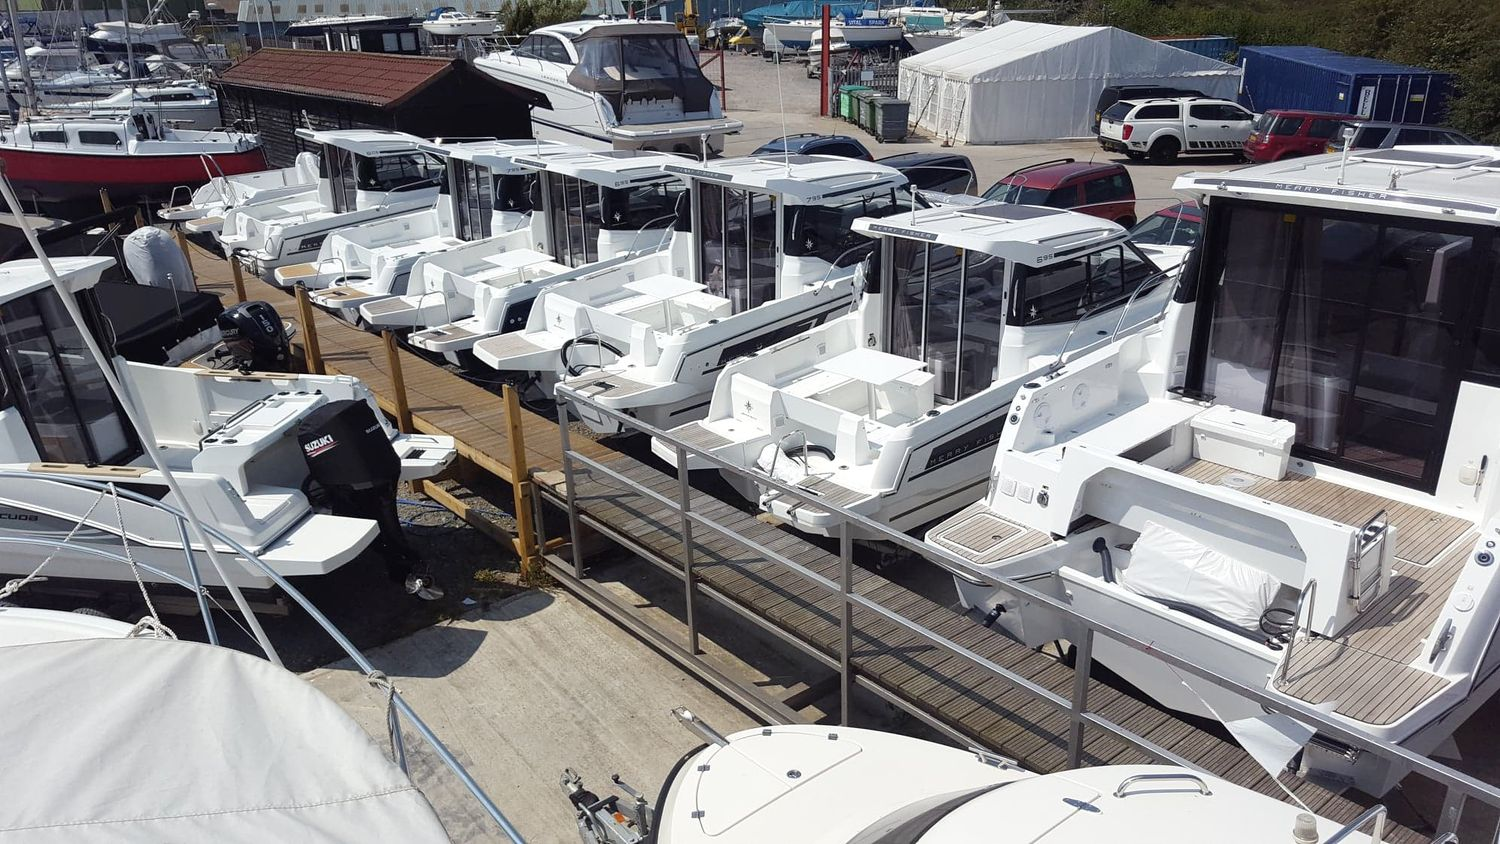 Jeanneau Merry Fisher boats on display at Morgan Marine